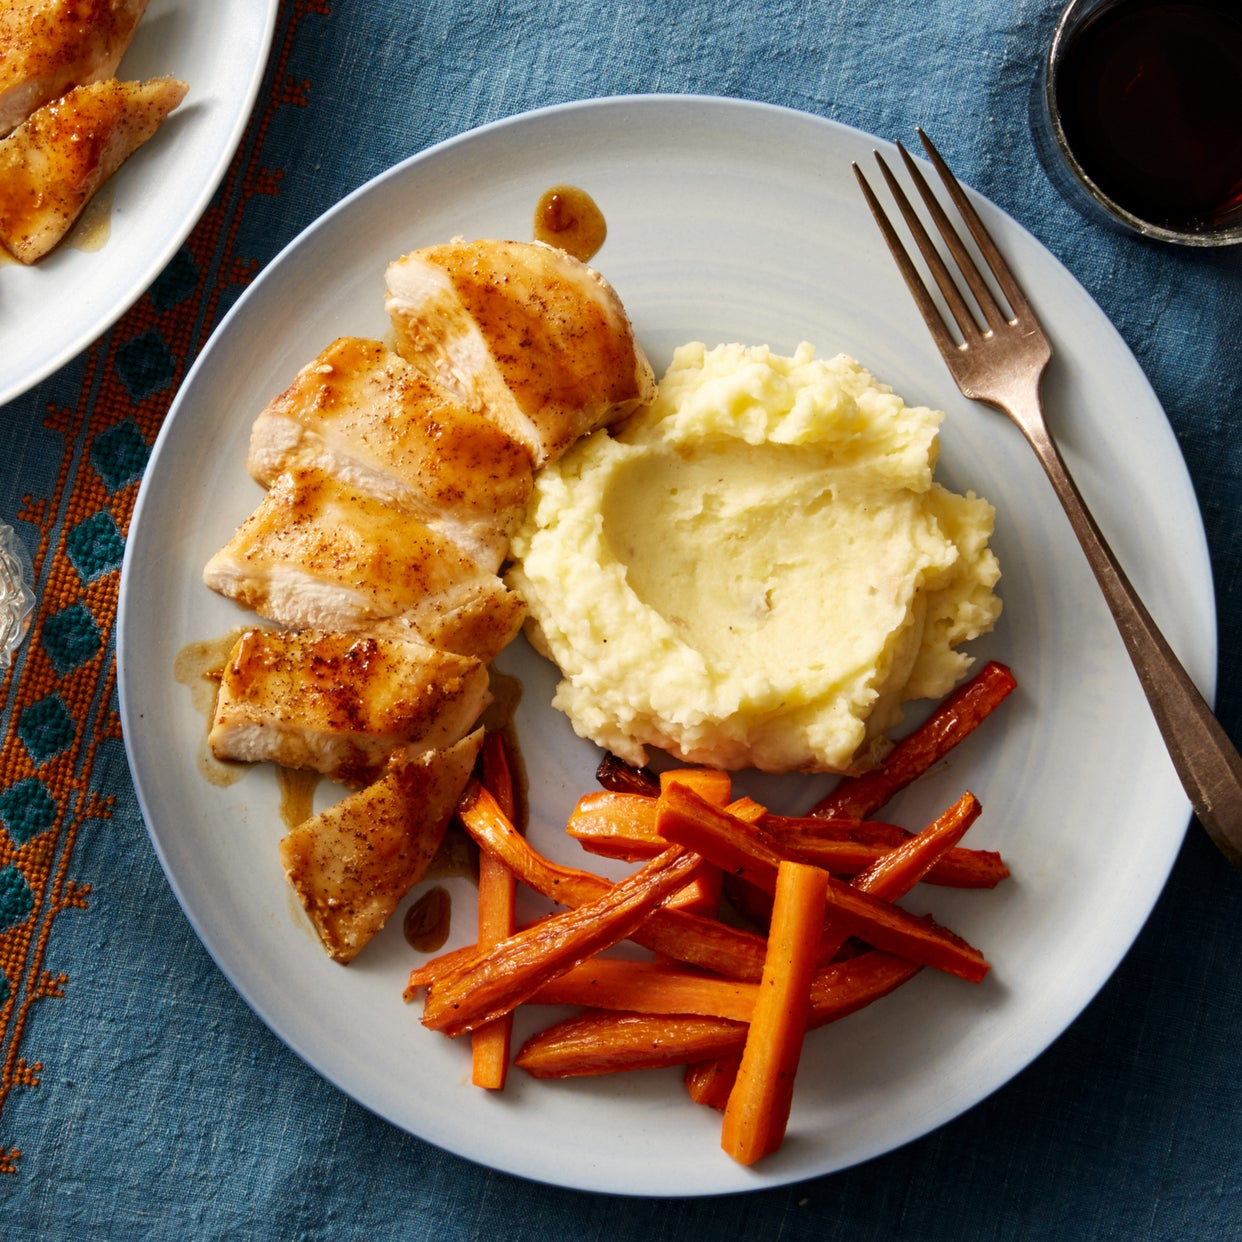 Seared Chicken & Mashed Potatoes with Maple-Glazed Carrots